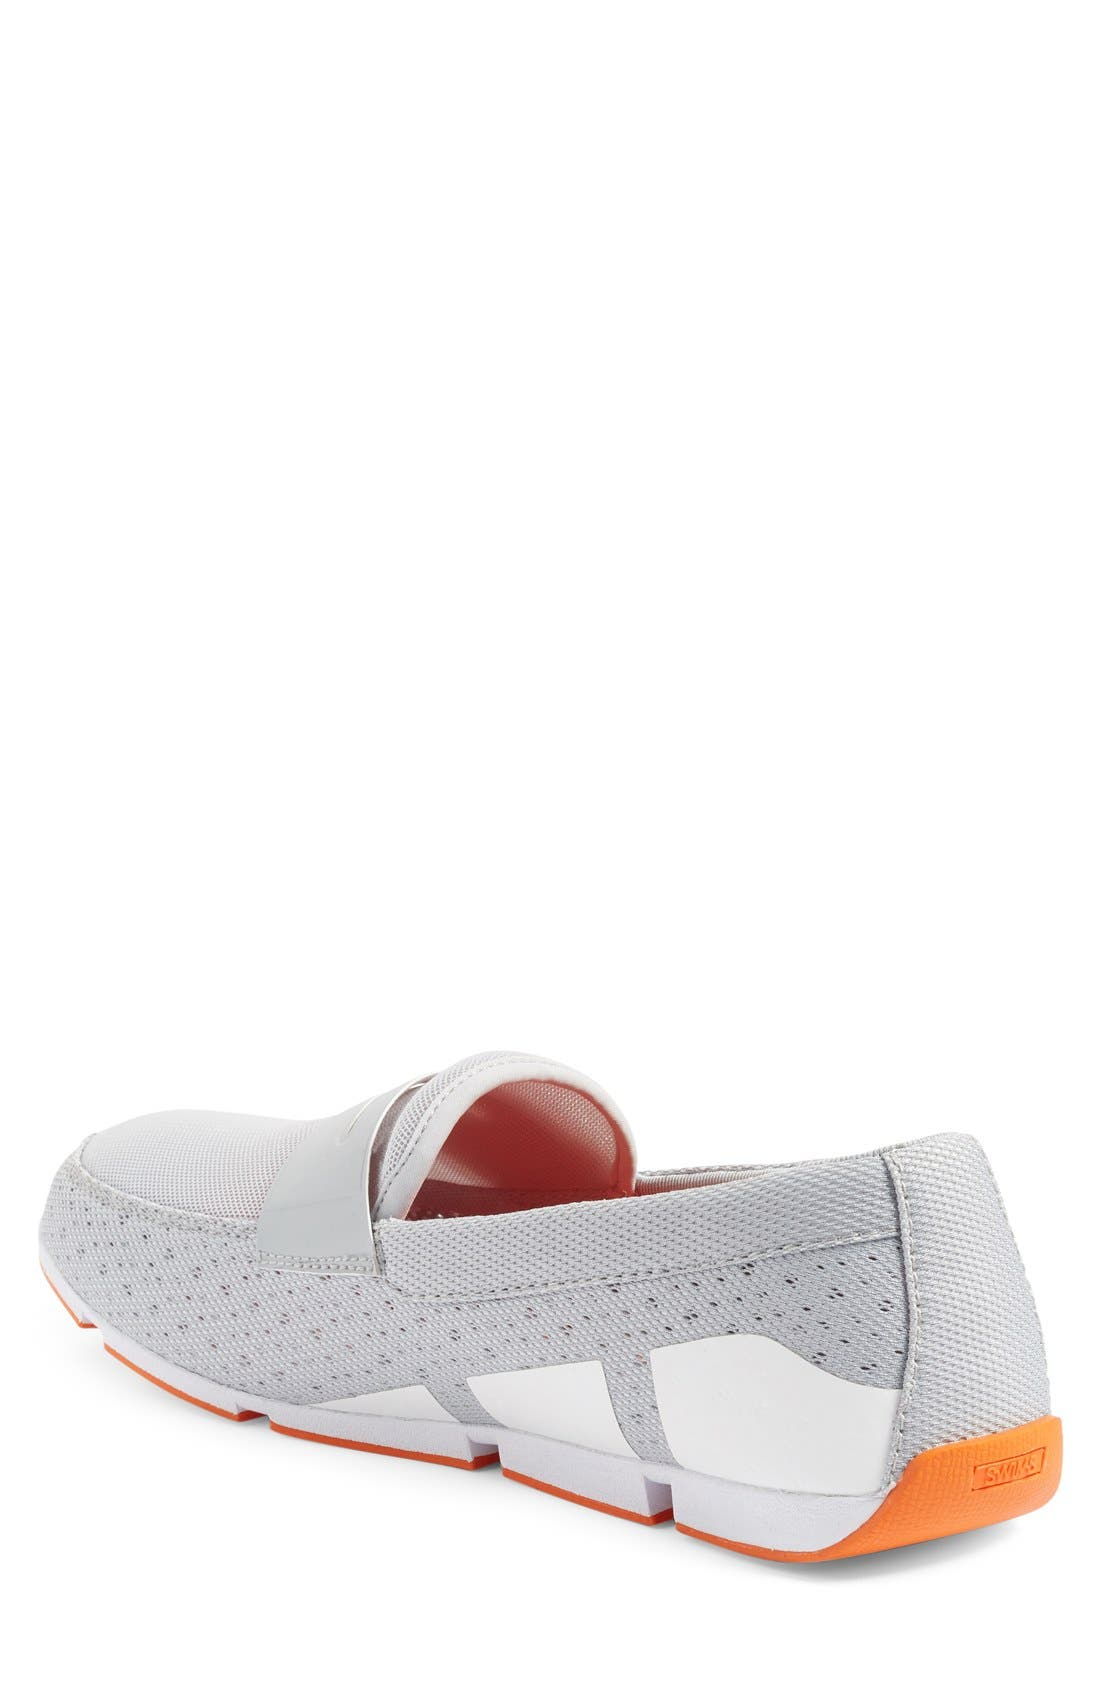 Breeze Penny Loafer,                             Alternate thumbnail 26, color,